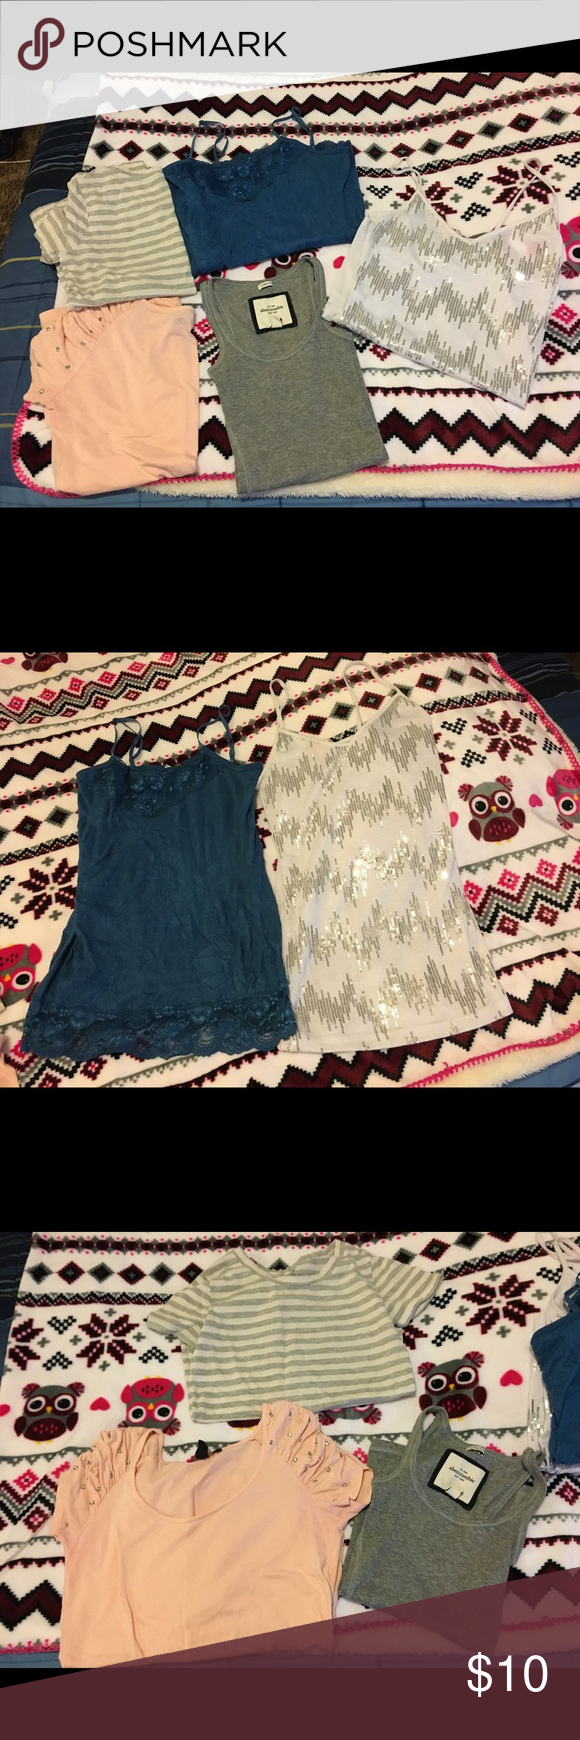 Lot of 5 shirts Different brands all in good condition and fit XS/Small. Tops